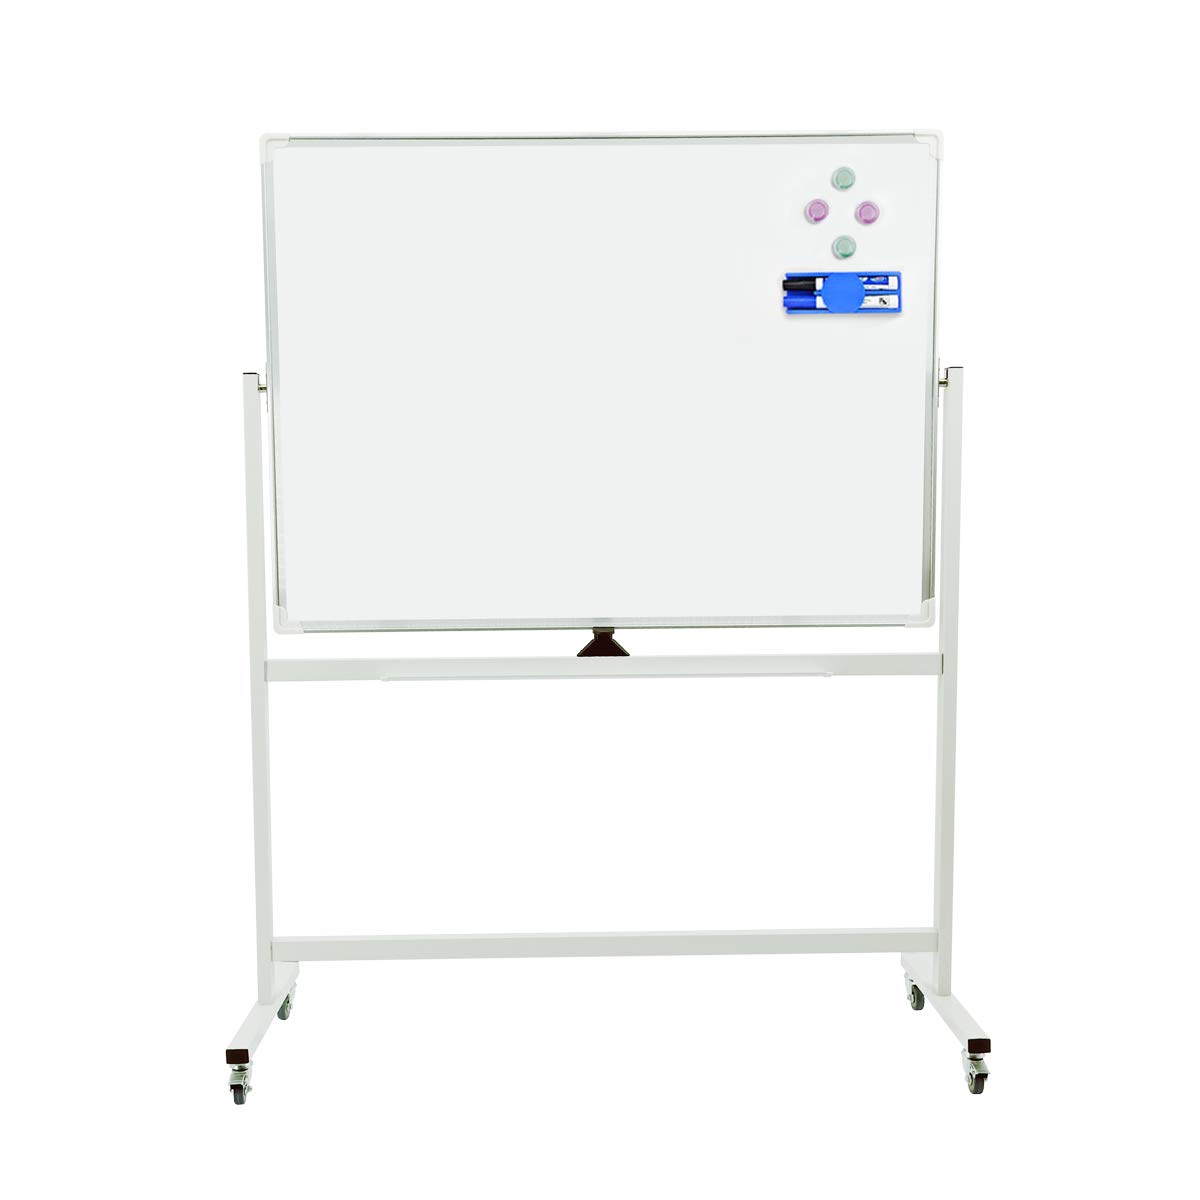 Double-Sided Mobile Magnetic Dry Erase Board with Stand, Quick Flip Over Reversible Feature (48'' X 36'')